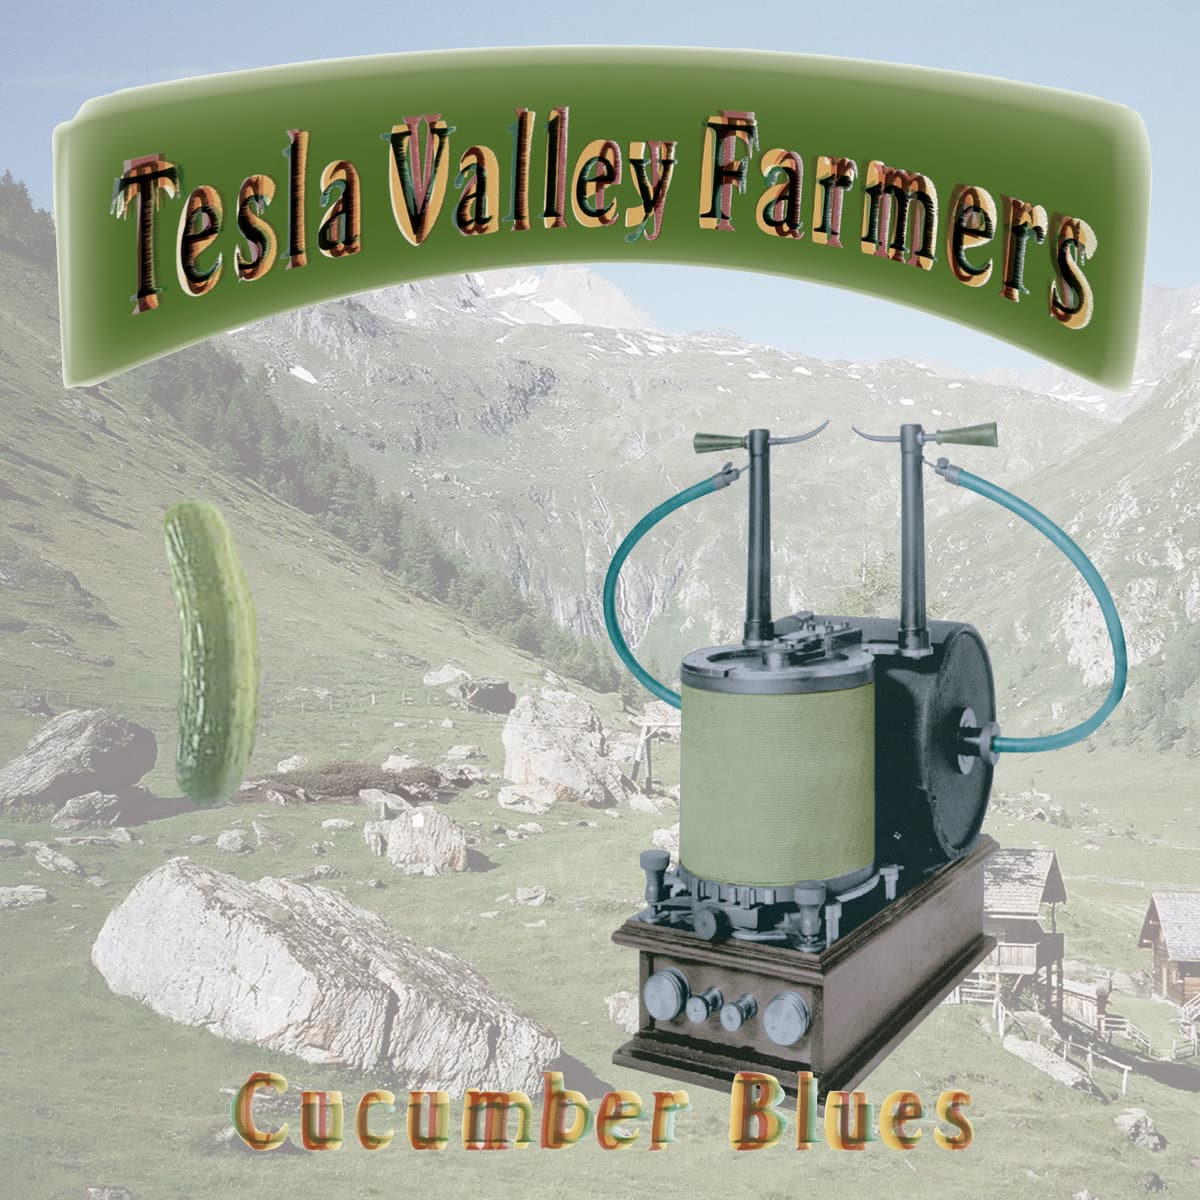 Tesla Valley Farmers